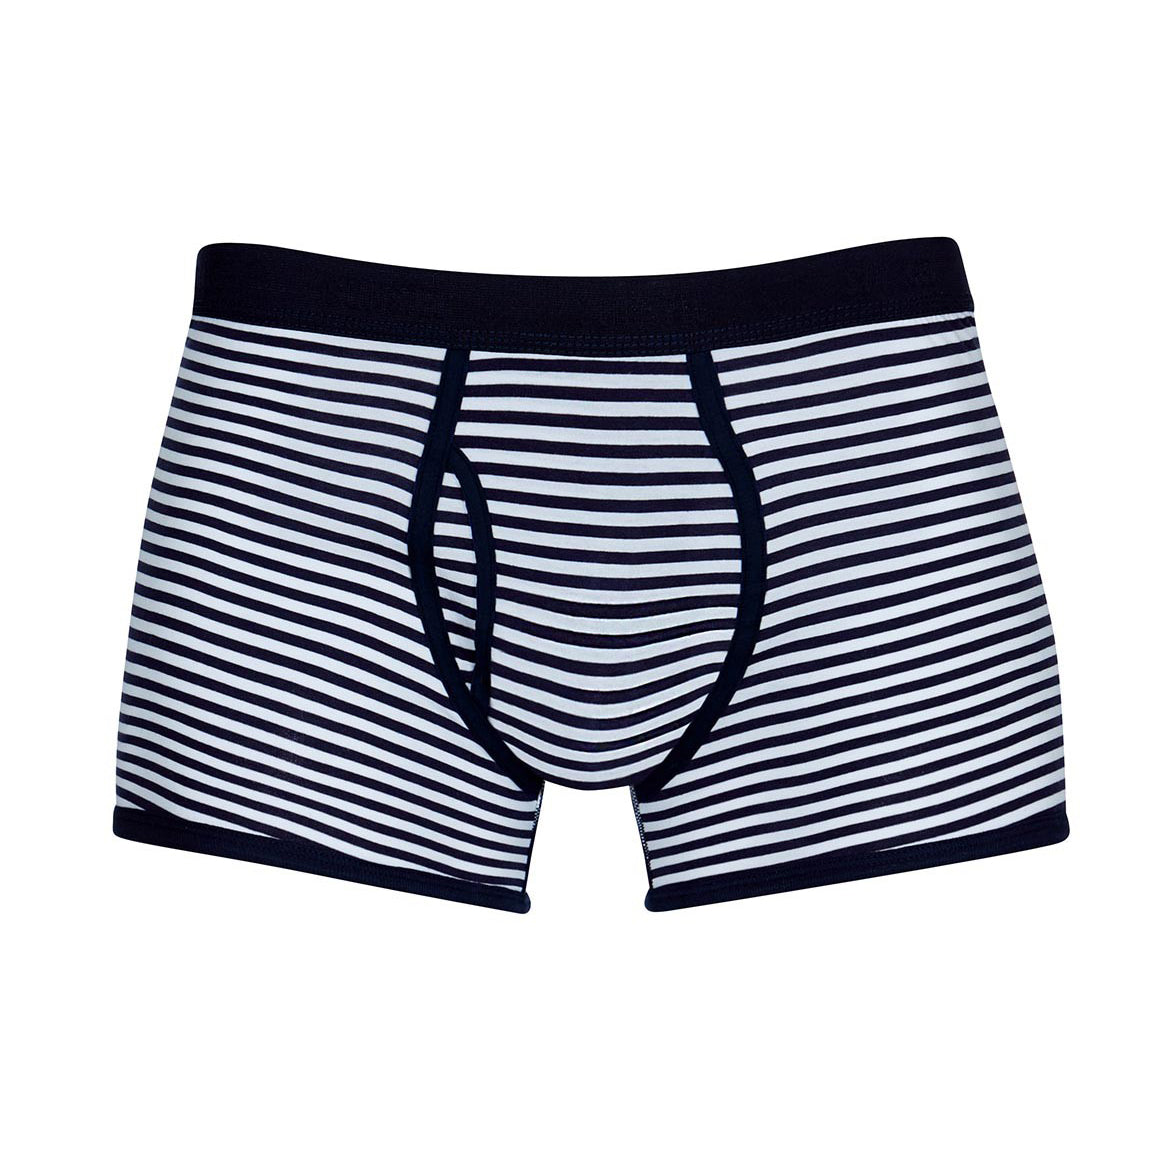 Superfine Cotton Striped Trunks - White / Navy